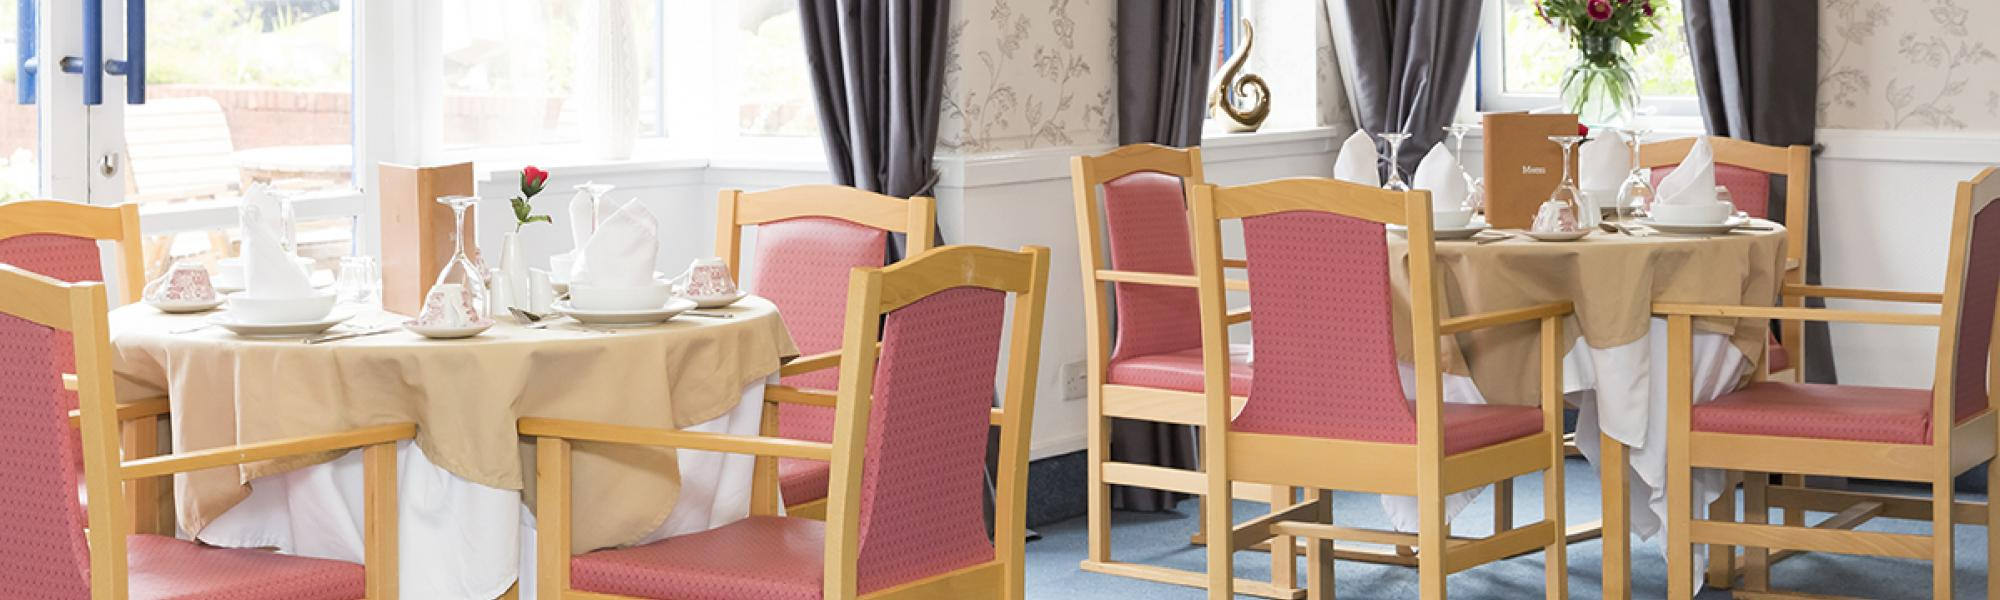 brighterkind Clarence Court Care Home in Glasgow